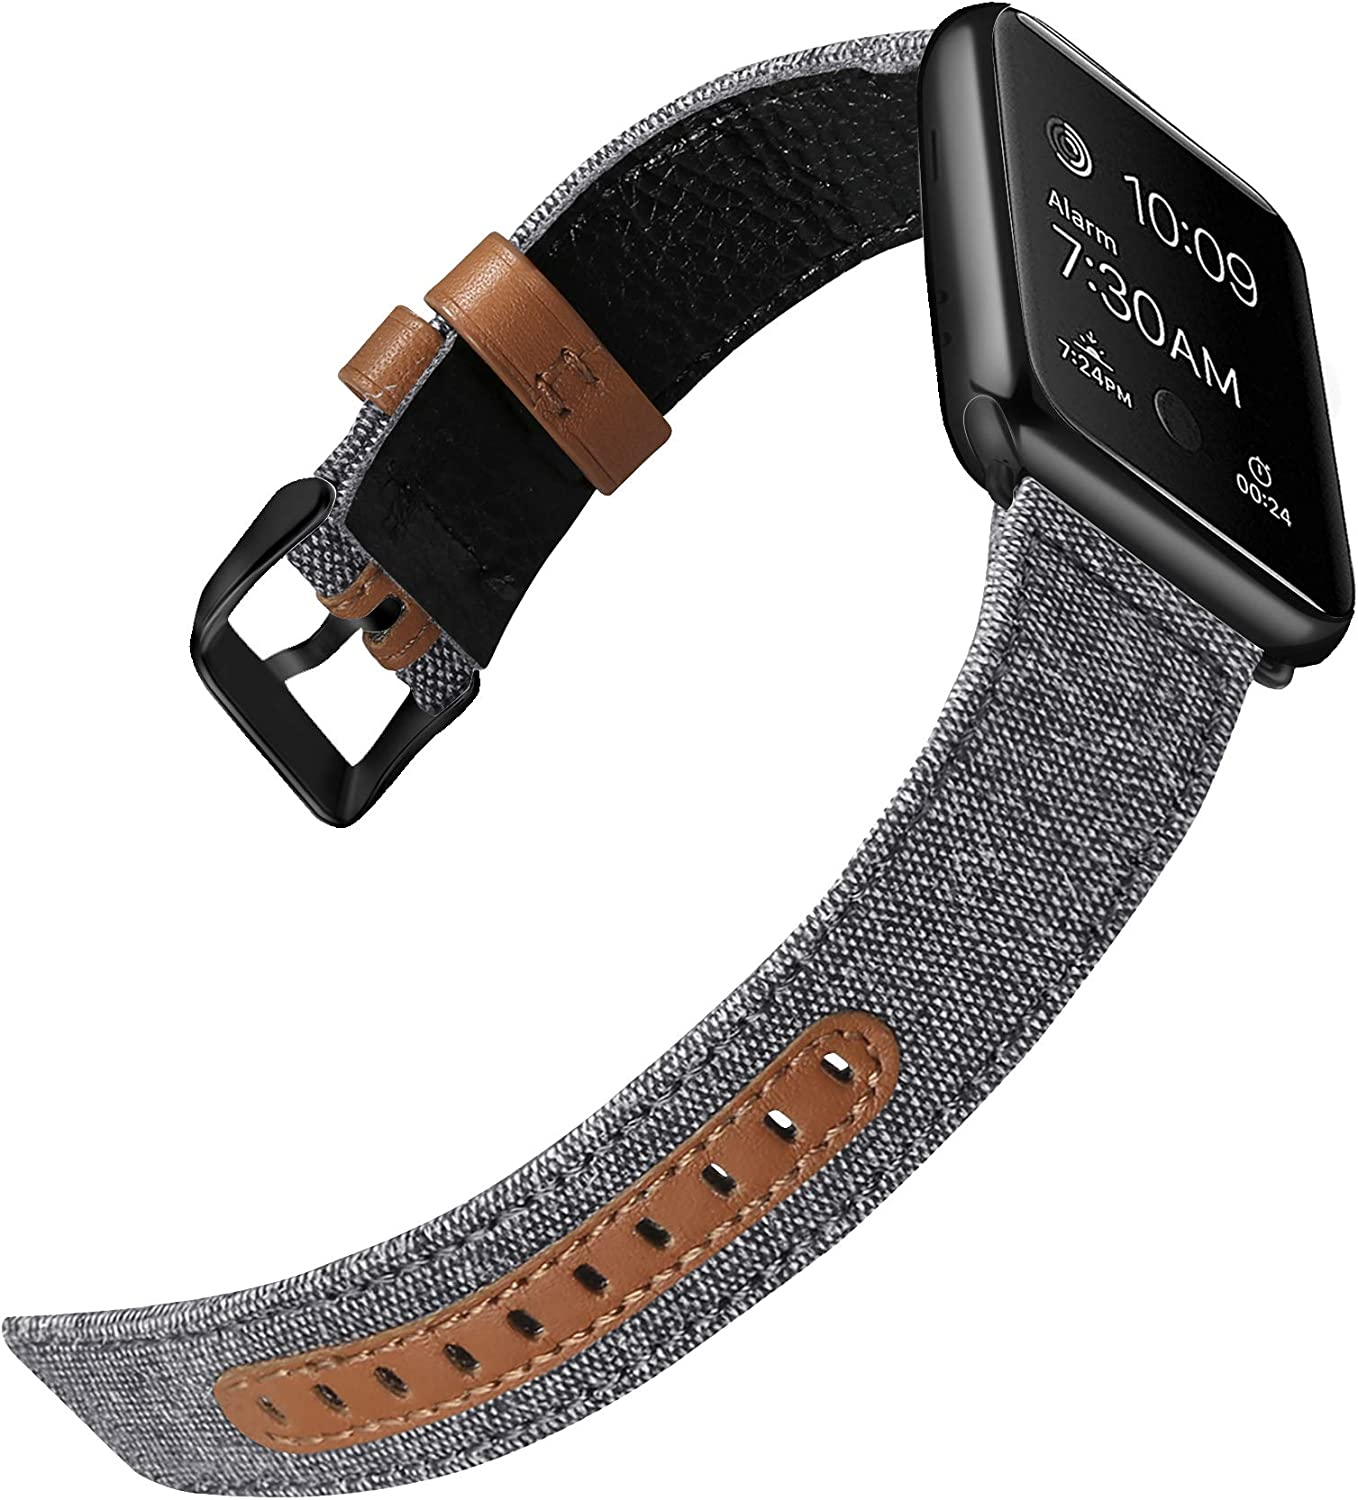 iHillon Bands Compatible with Apple Watch 42mm 44mm 38mm 40mm Series 6 SE Series 5 Series 4 Series 3 Straps, Classic Canvas Fabric Genuine Leather Wristbands Black Silver Buckle for iWatch Series 2 1